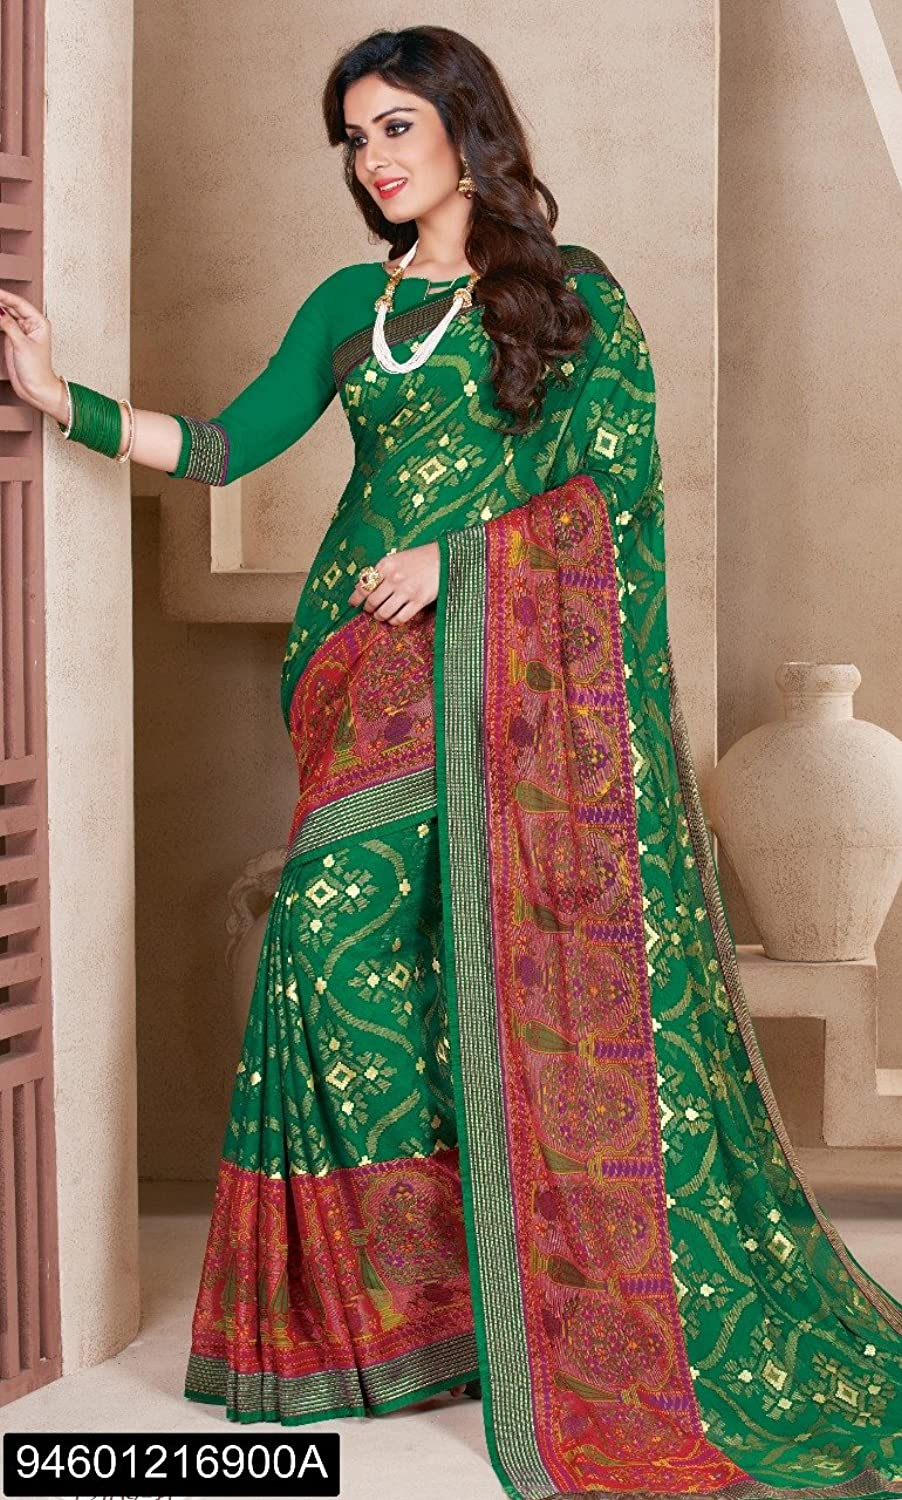 Designer Bollywood Saree Sari for Women Latest Indian Ethnic Collection Casual Wear Festive Ceremony 2694 21